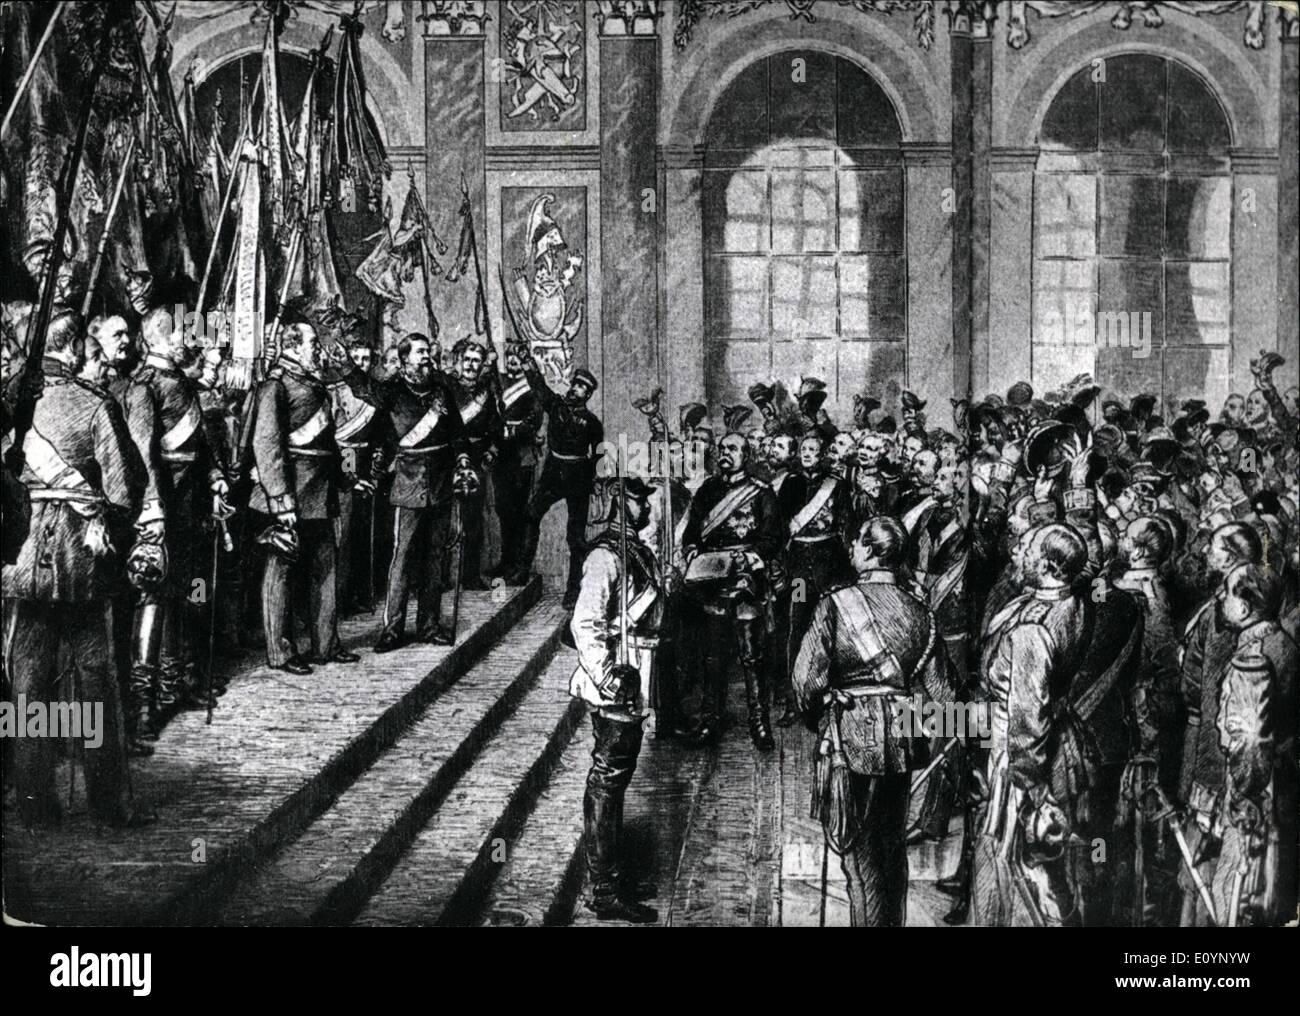 Jan. 01, 1971 - Emperor's Proclamation in Versailles: On January 18th, 1871 the Prussian King Wilhelm I is proclaimed German emperor at Versailles. Prussia leaded by Bismarck, has succeeded in solving the ''German Affairs''. Leaded by Prussia, 25 German separate states from together the second German Empire, Due to the forthcoming, victory over France the criticism of people against Prussia didn't find ant attention.Photo Shows Painting of Anton Von Weber showing the emperor's proclamation in Versailles - The Assembled sovereigns and soldiers welcome Emperor Wilhelm. In the Center: Bismarck. - Stock Image